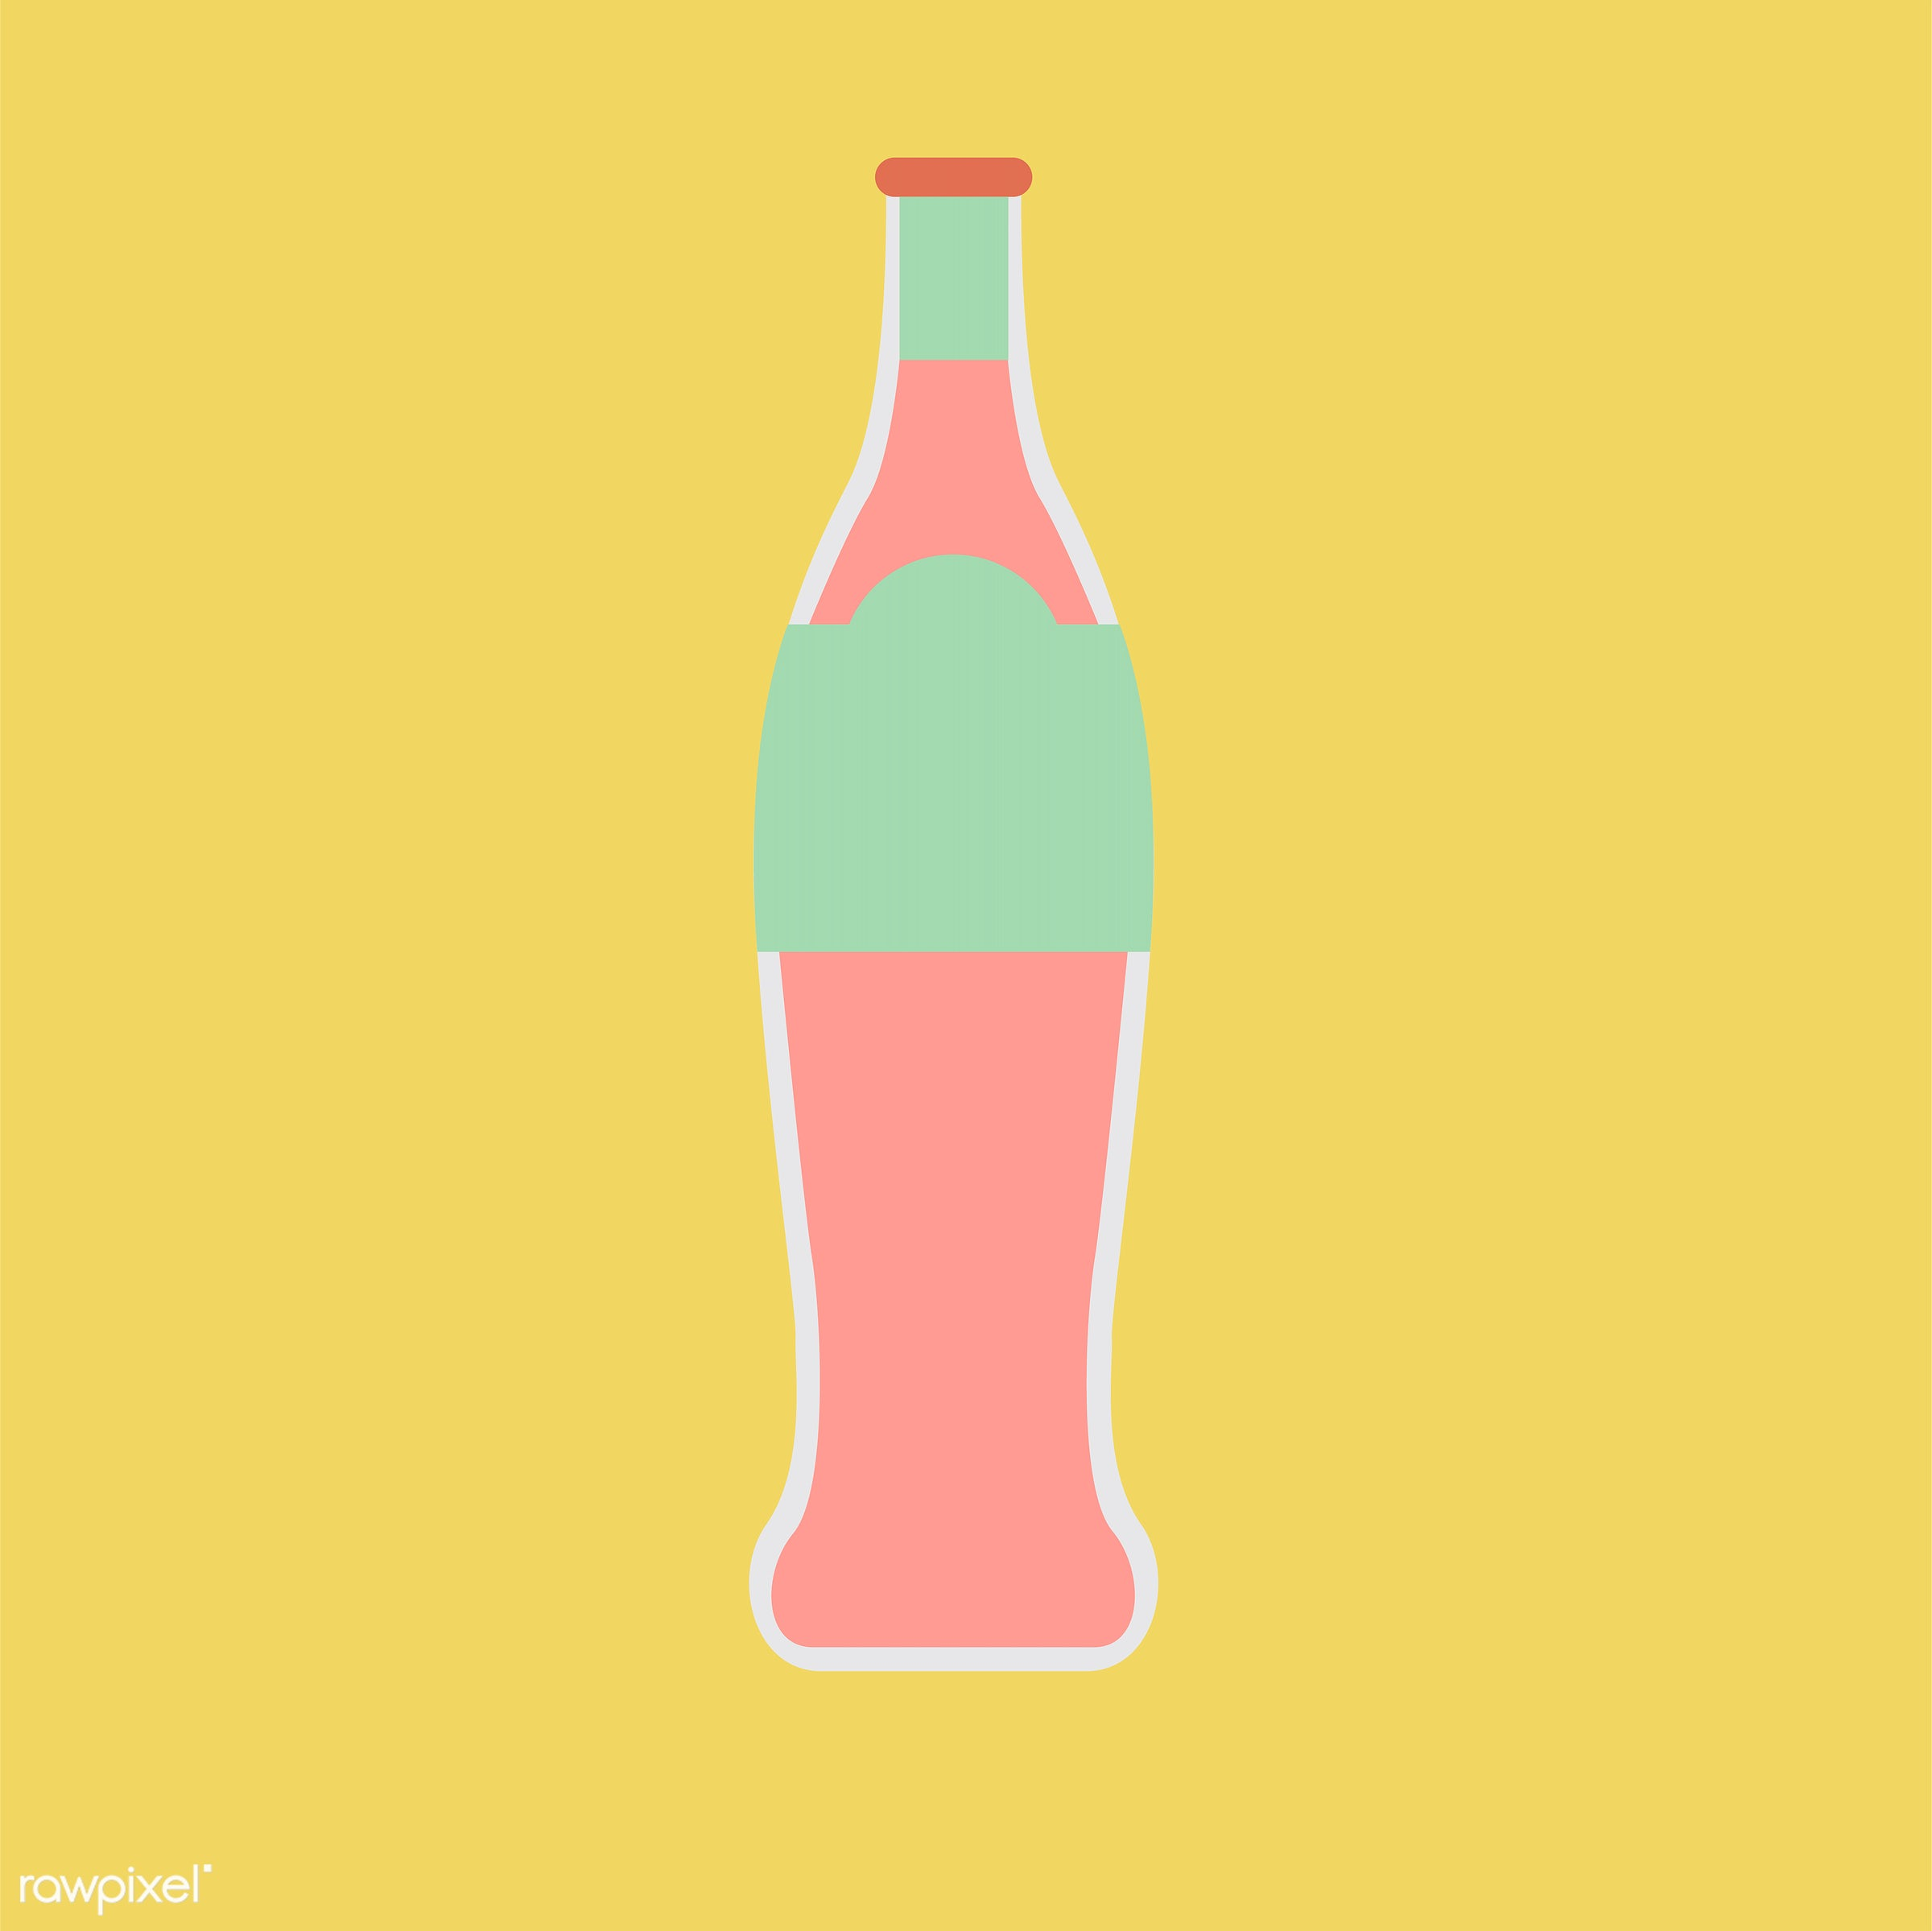 vector, illustration, graphic, cute, sweet, girly, pastel, soda, bottle, drink